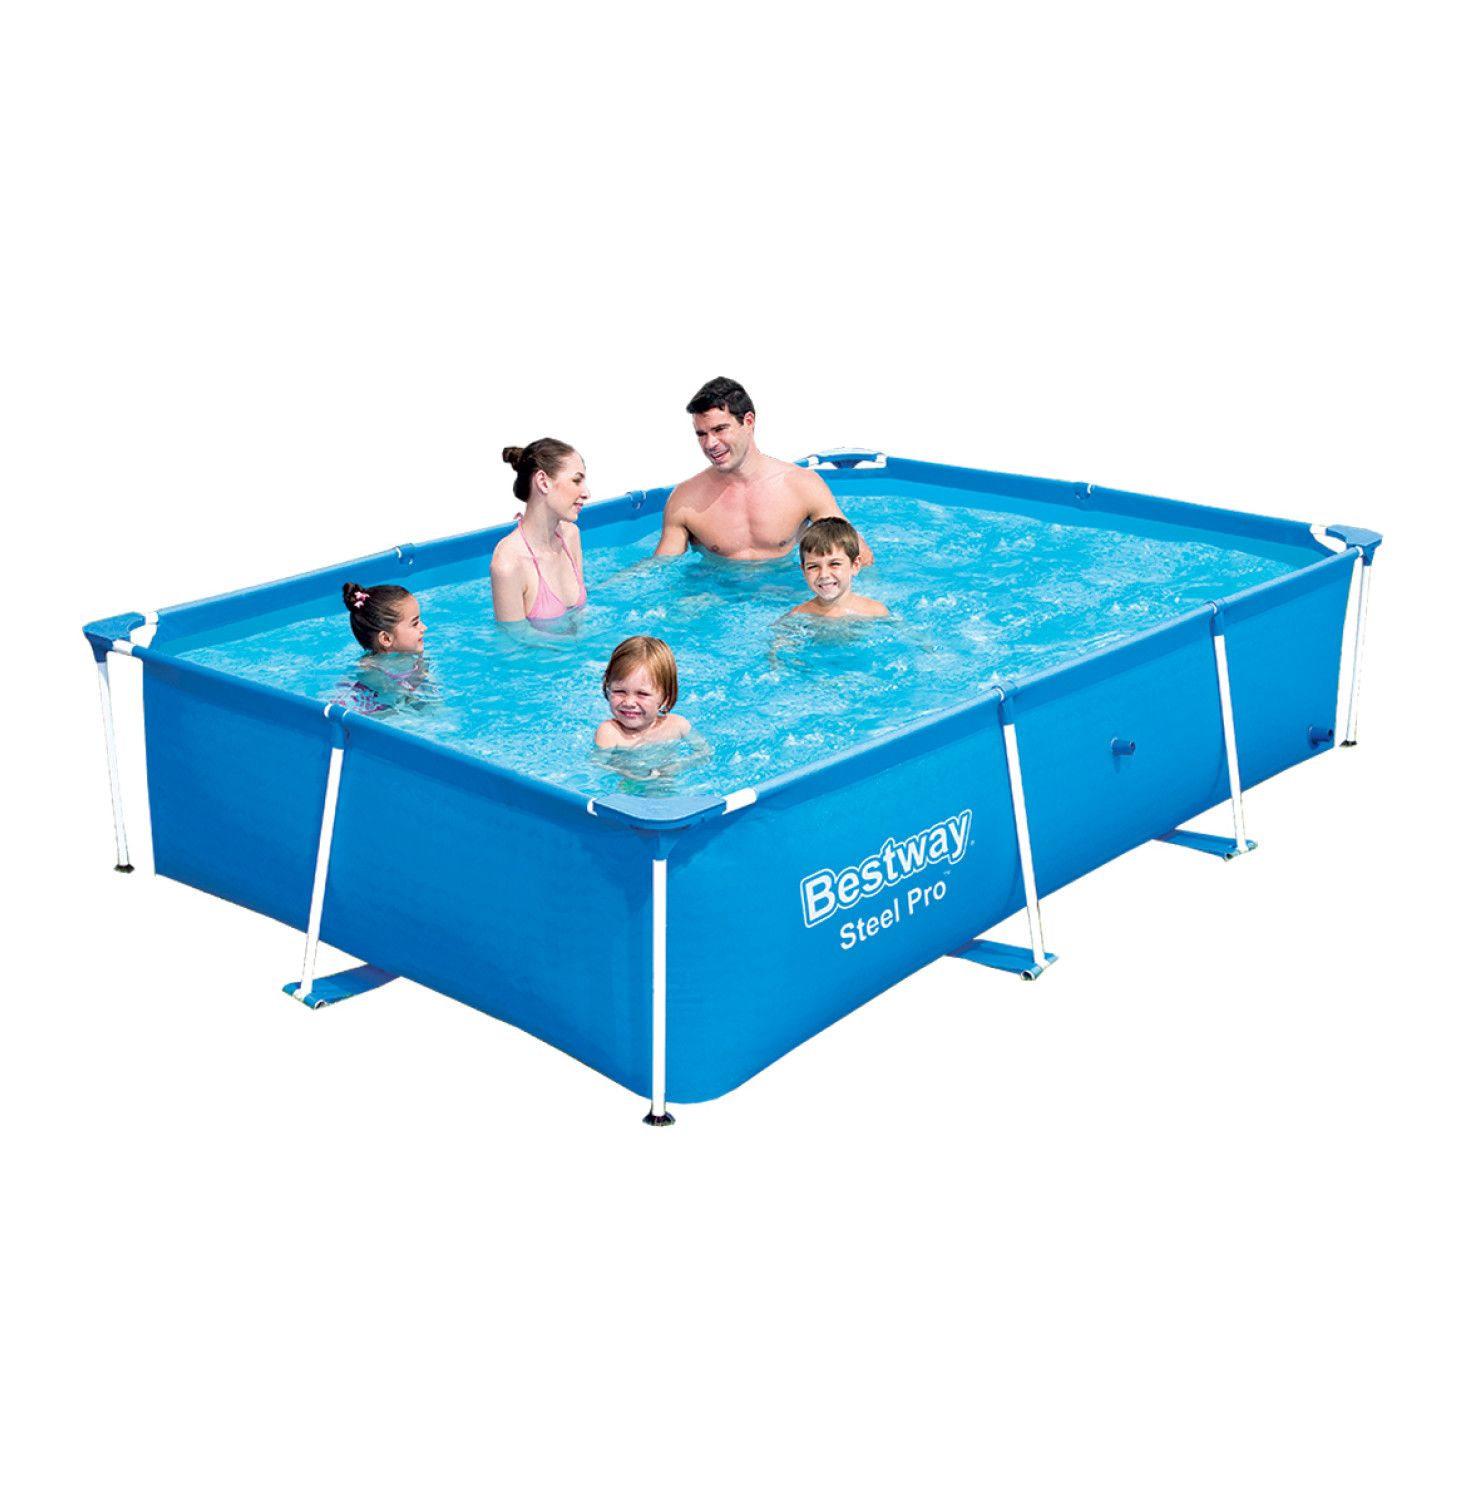 Pool Sandfilteranlagen Im Test Bestway Deluxe Splash Jr Frame Pool Lowest Prices Specials